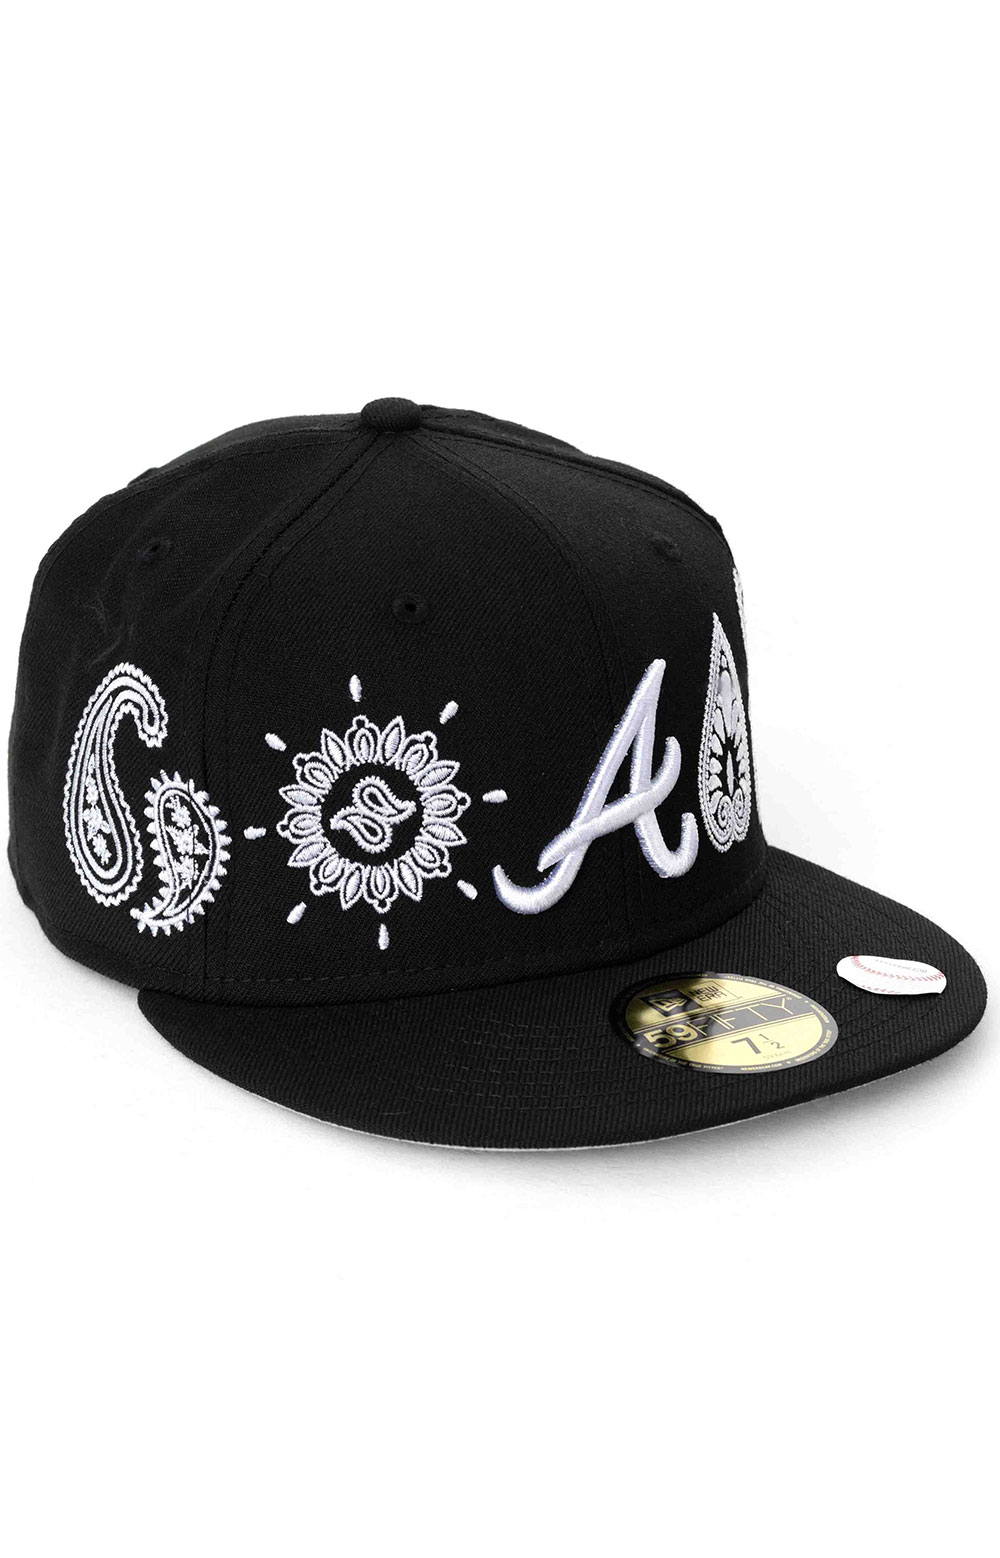 Atlanta Braves Paisley Elements 59Fifty Fitted Hat - Black  3